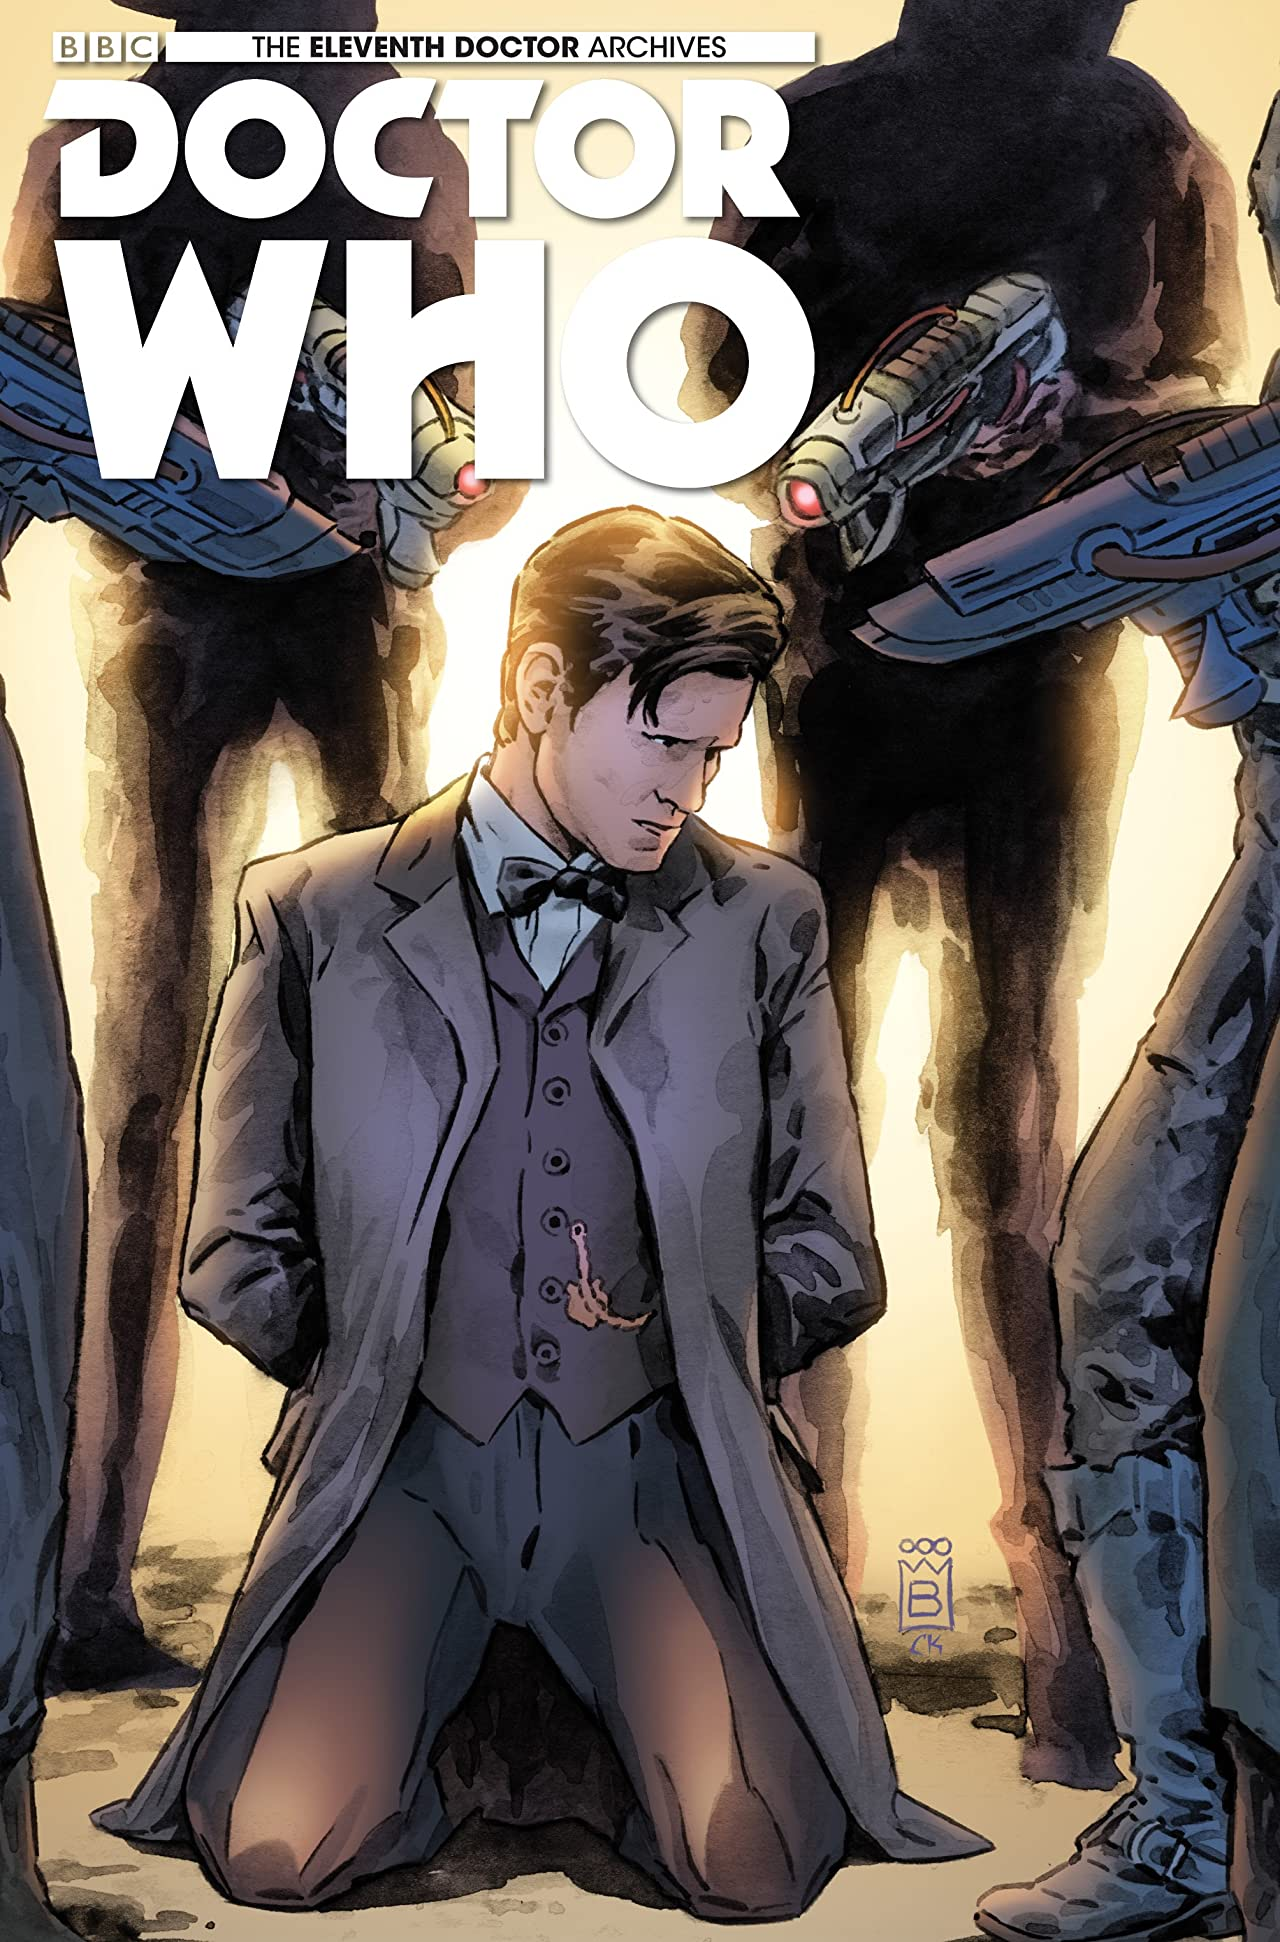 Doctor Who: The Eleventh Doctor Archives #37